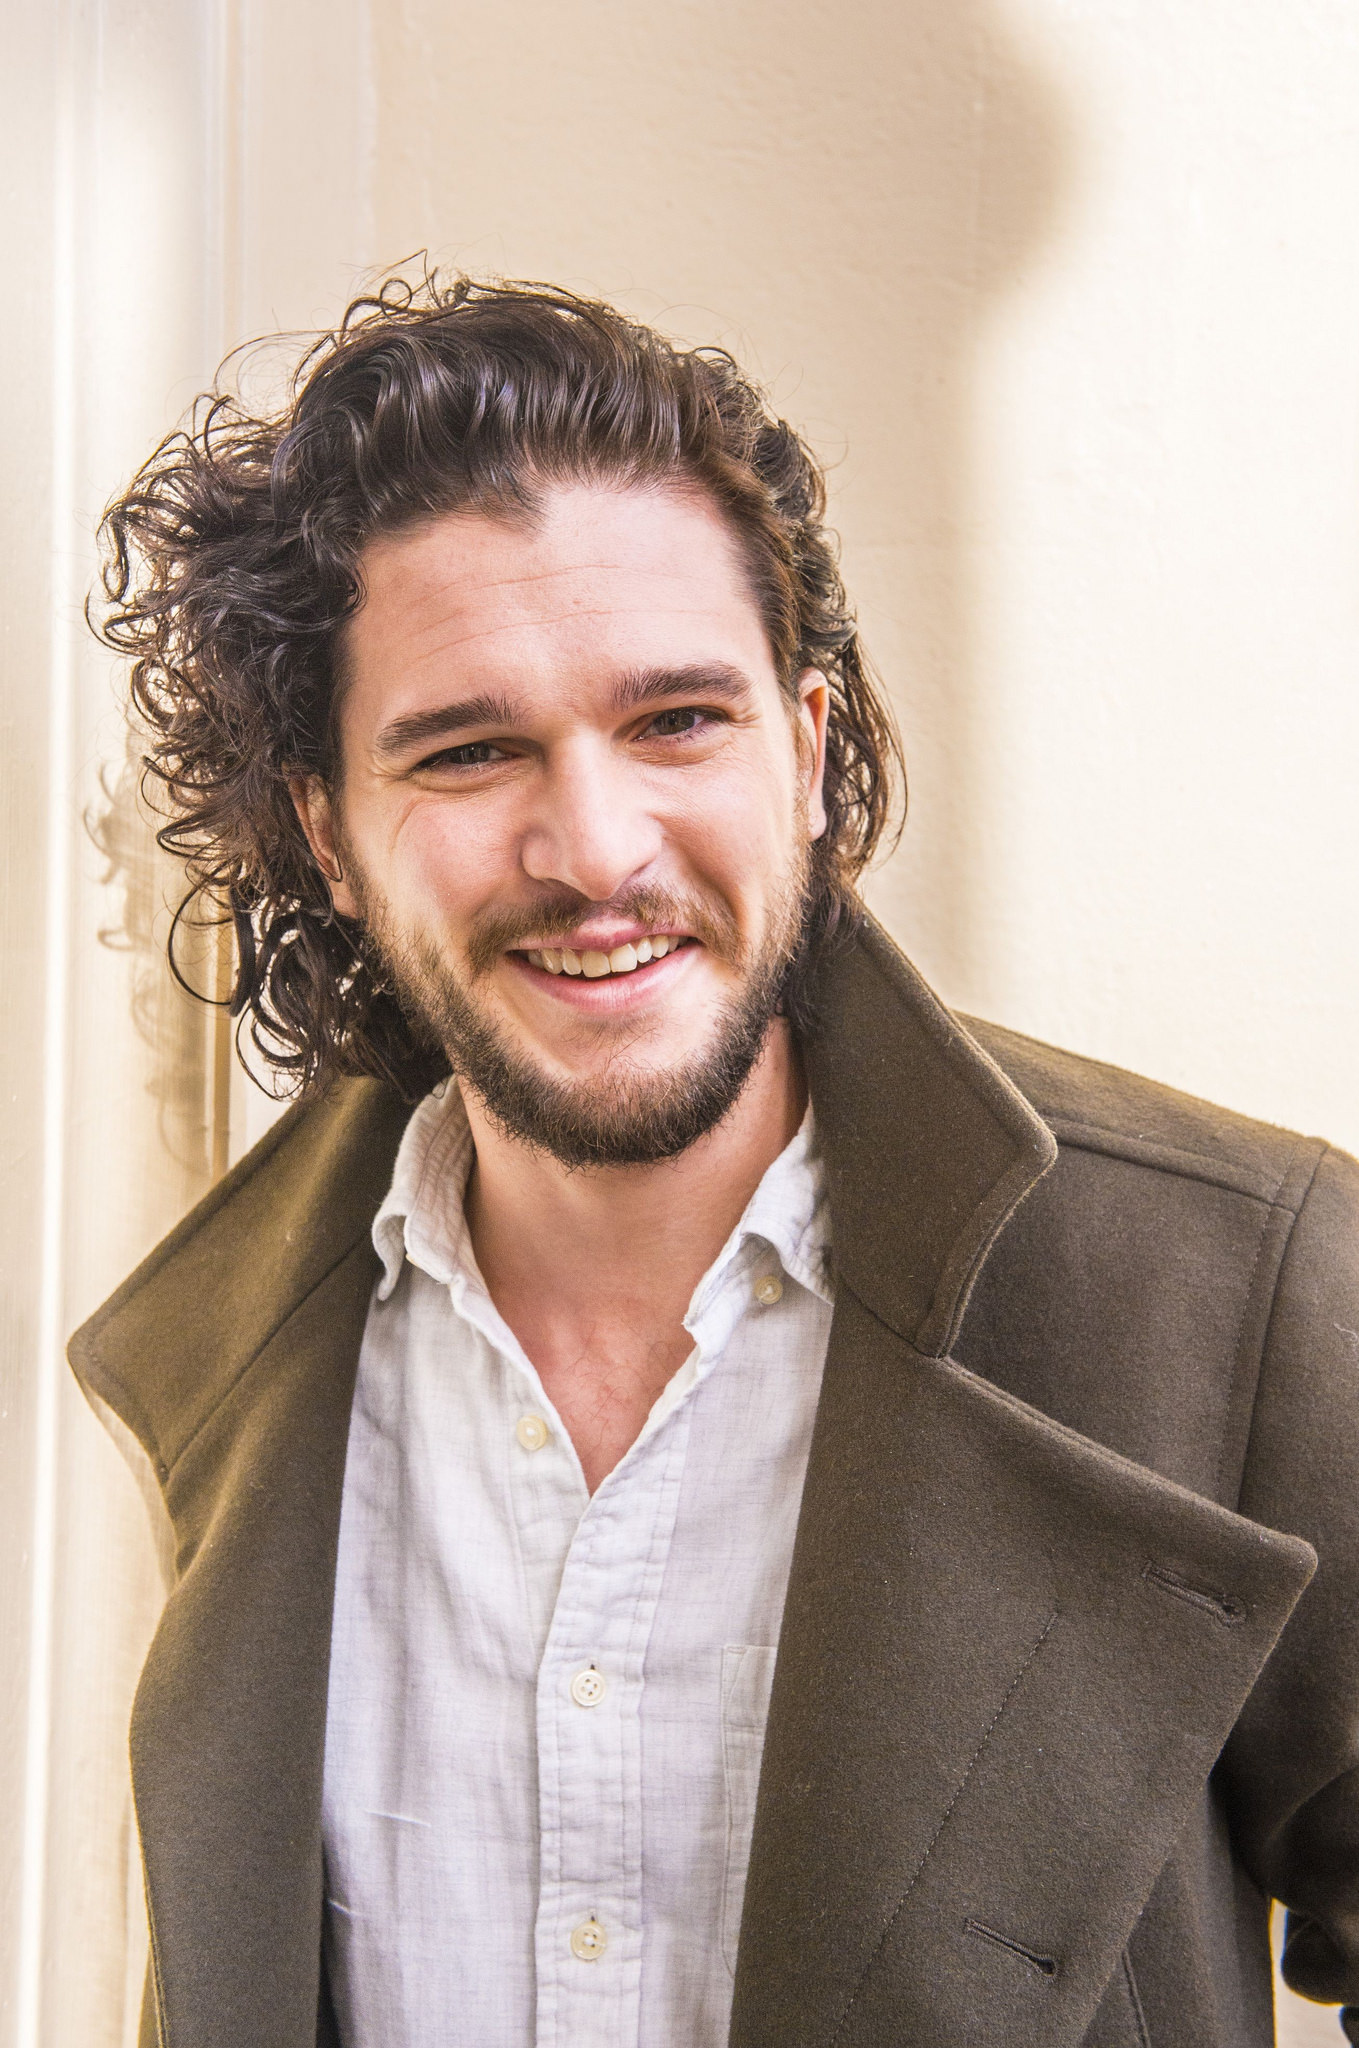 Kit Harington photo #711556